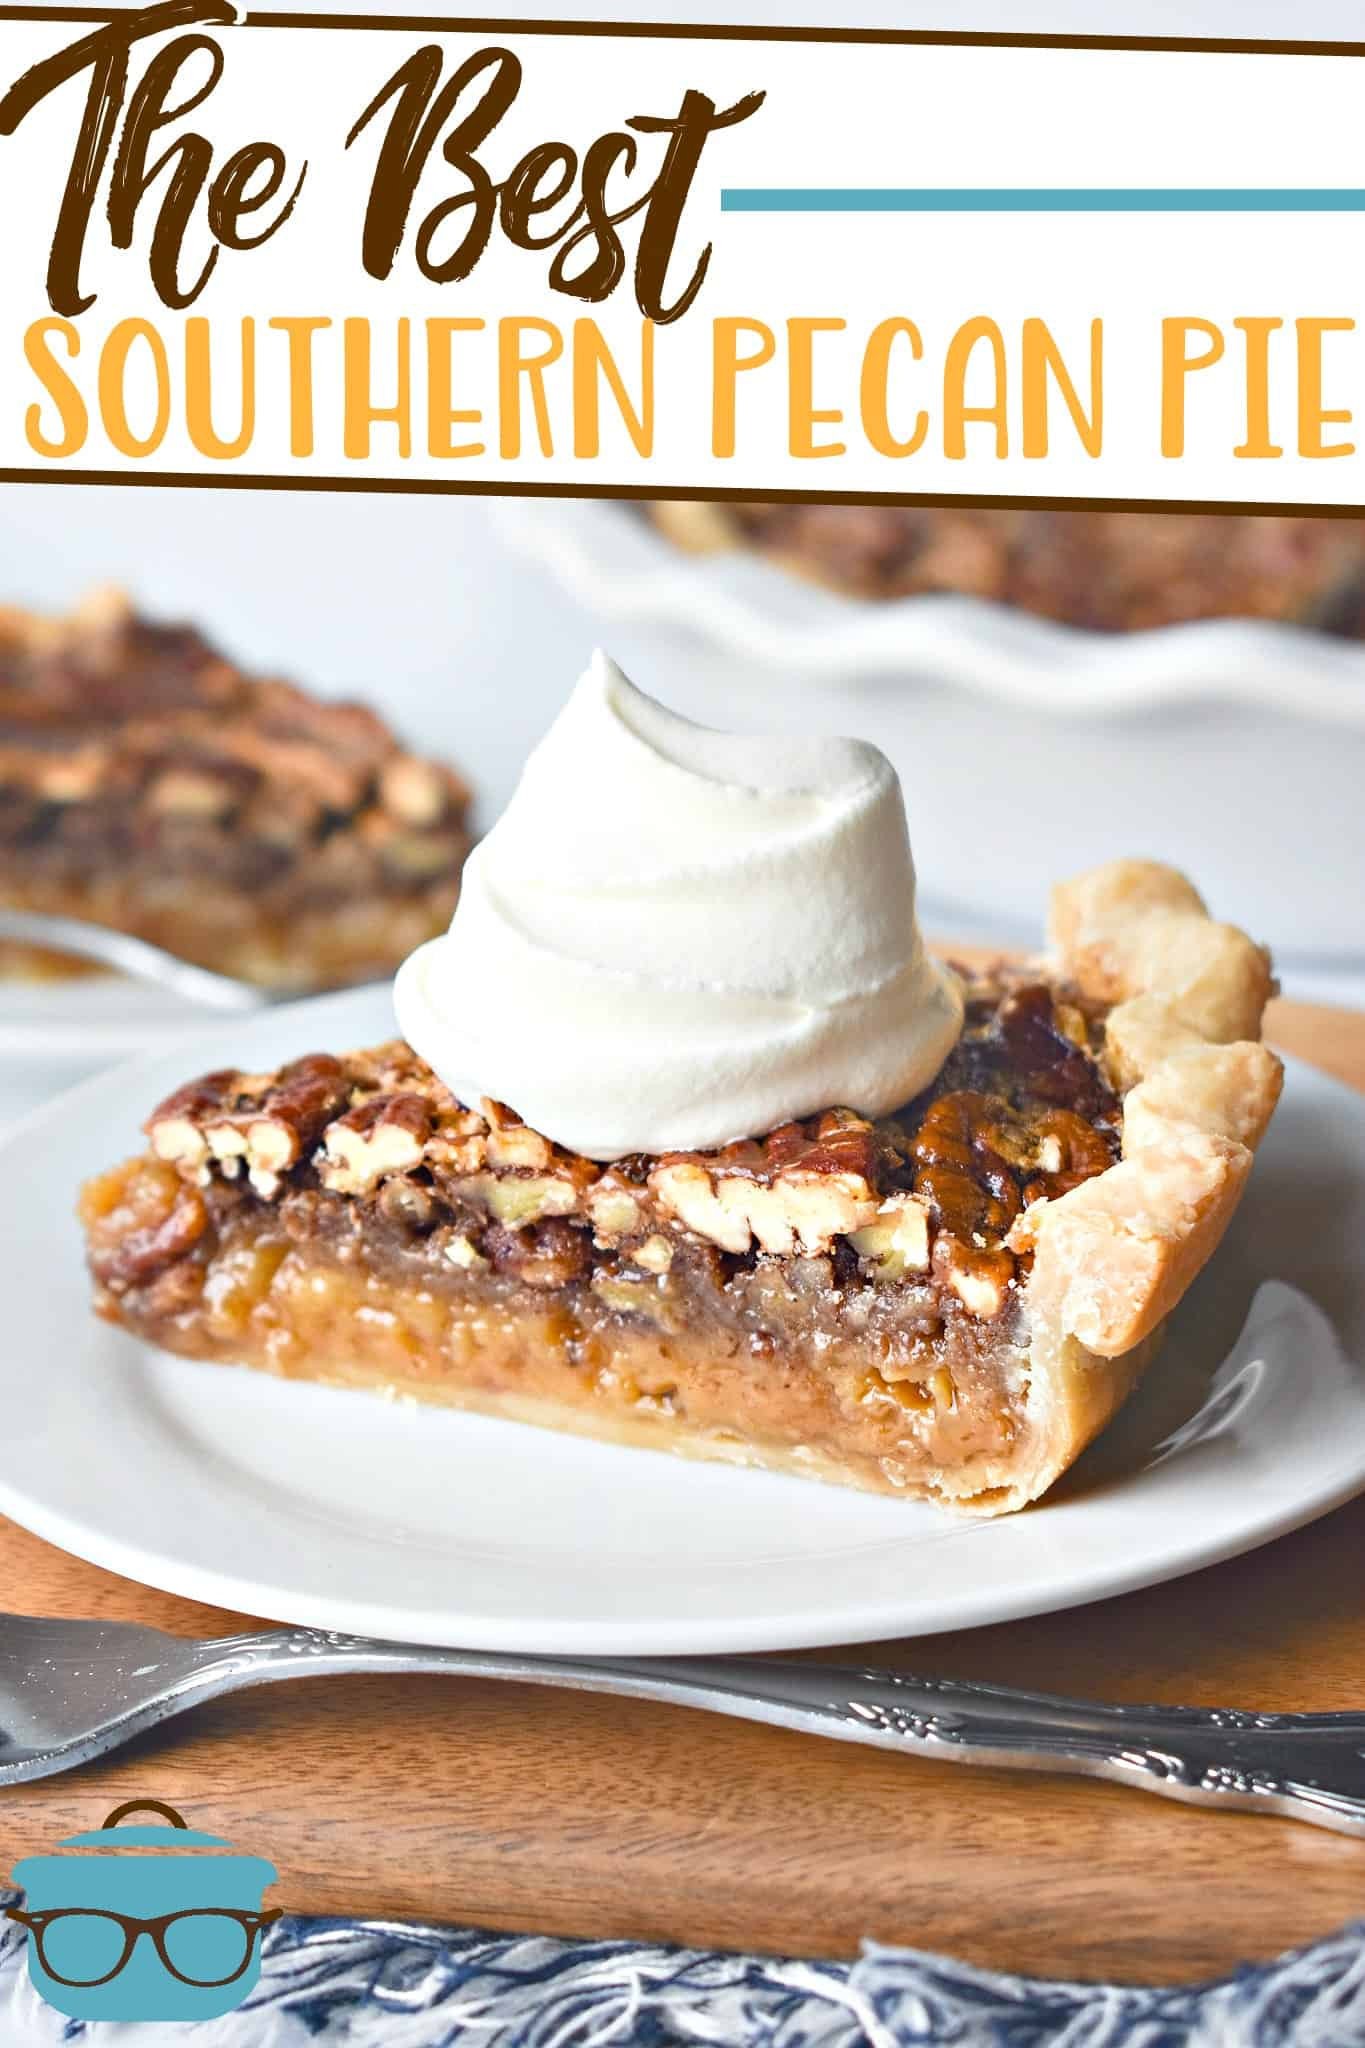 The Best Southern Pecan Pie is made with a flaky pie crust, real butter, dark corn syrup, a touch of cinnamon and fresh pecans.